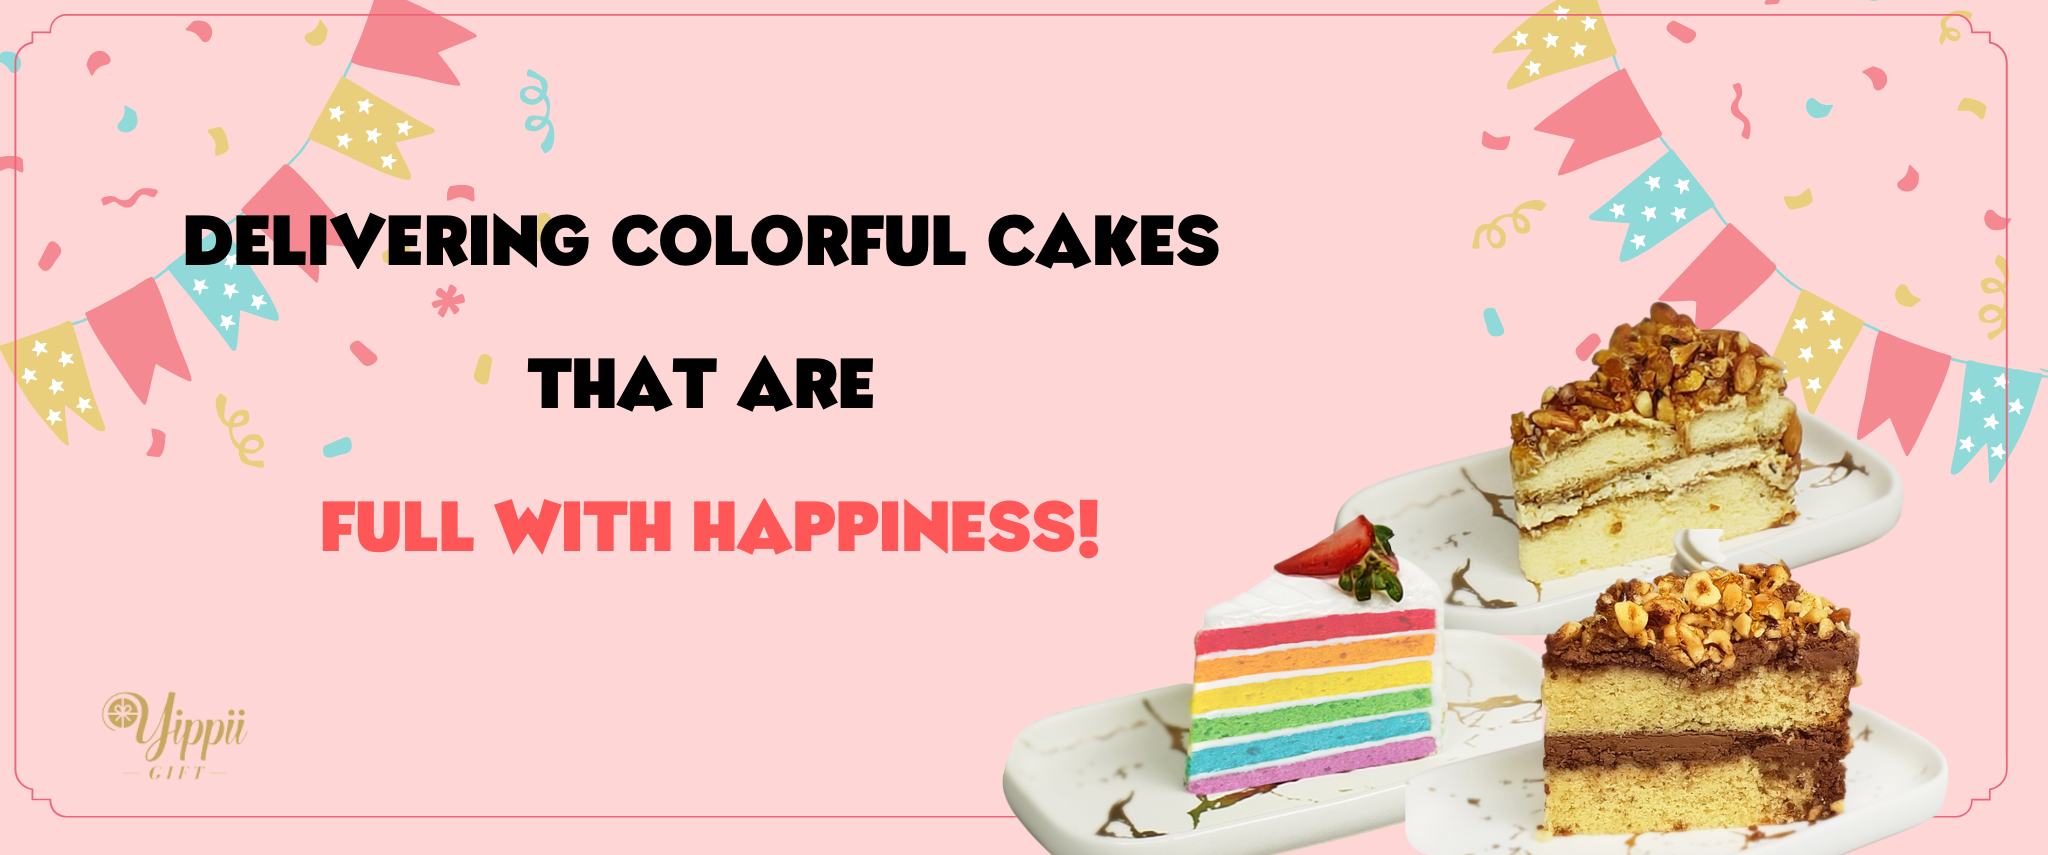 Yippii Gift   Cakes that brings Happiness